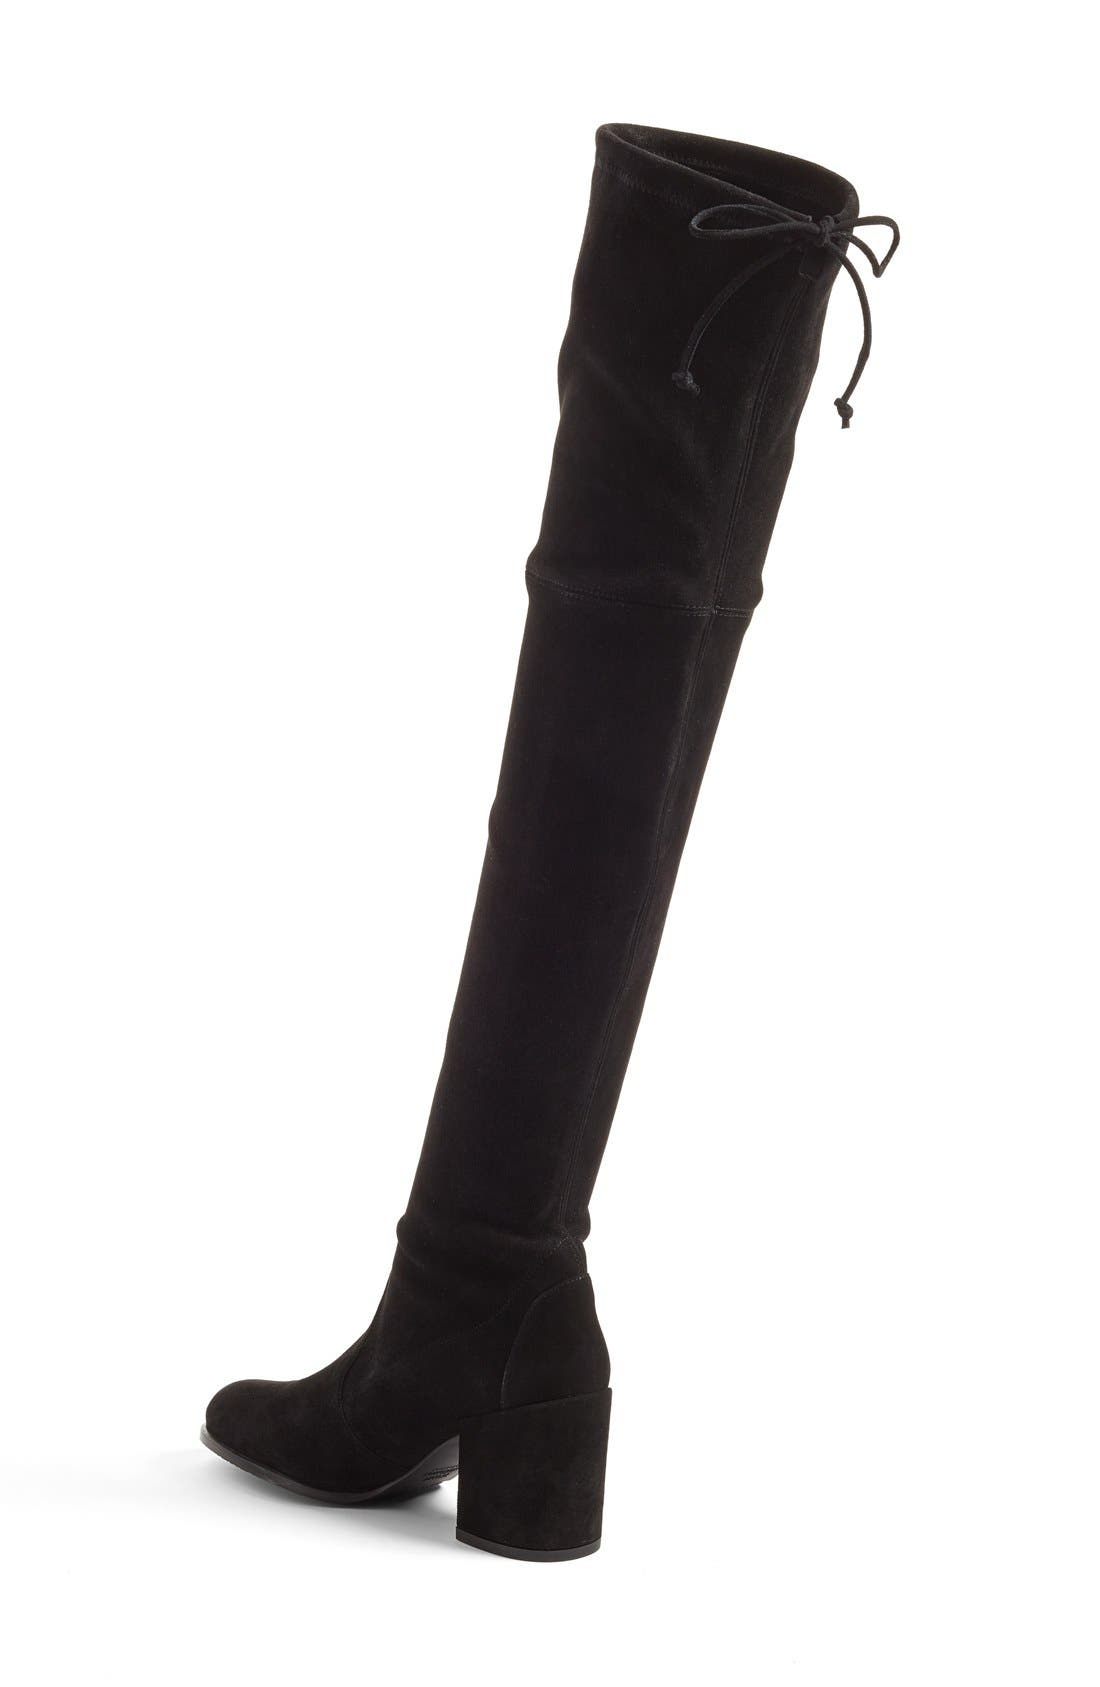 Tieland Over the Knee Boot,                             Alternate thumbnail 3, color,                             BLACK SUEDE